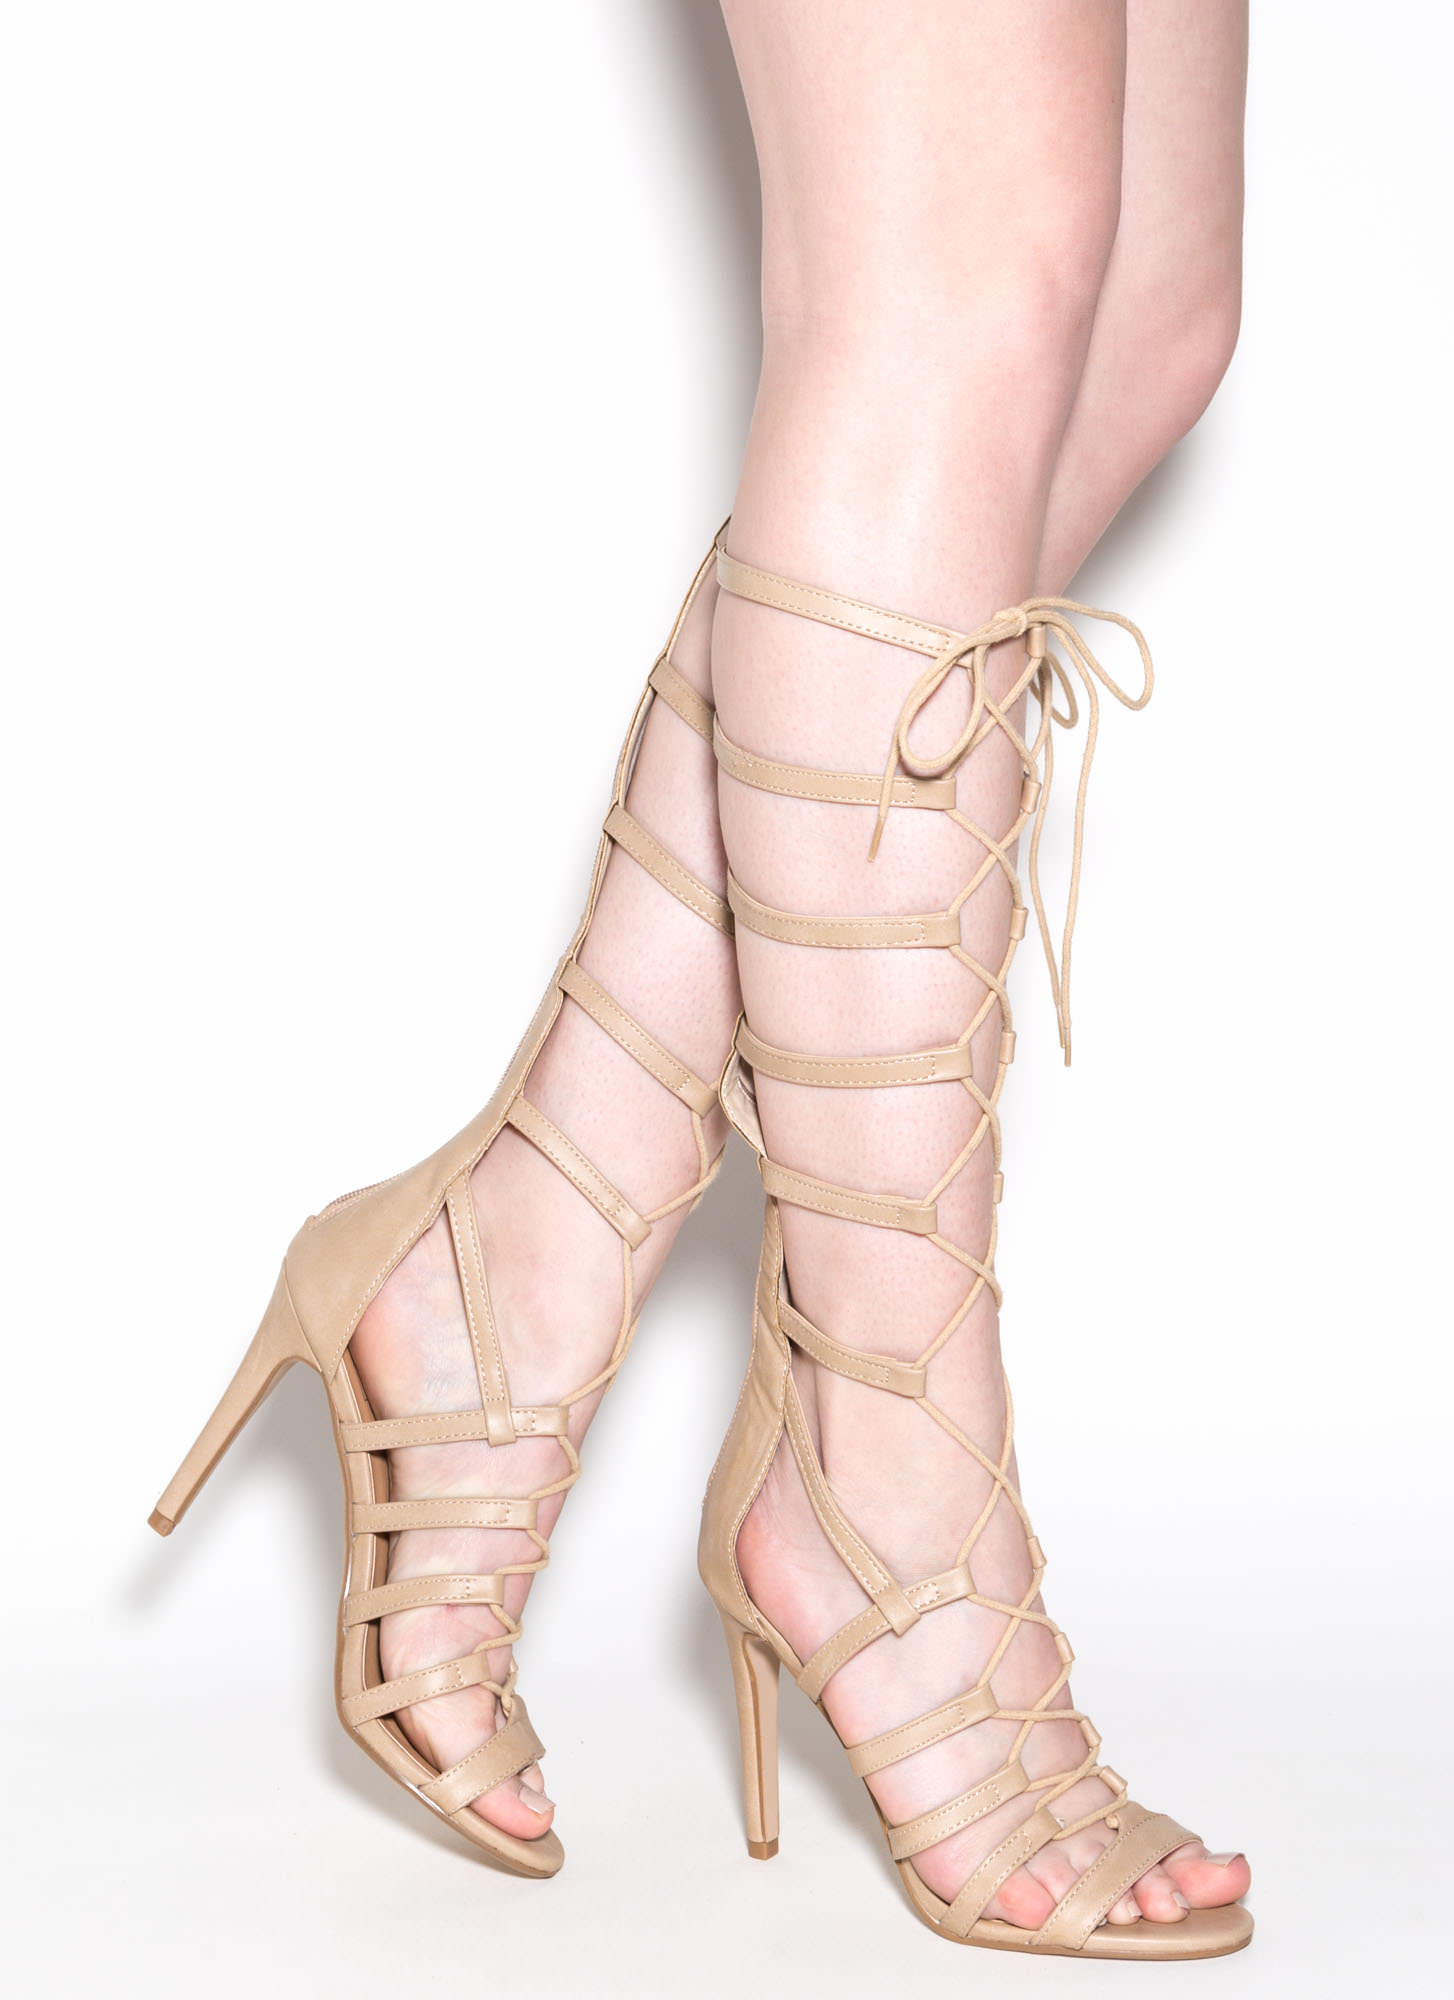 Take Notice Gladiator Heels DKBEIGE